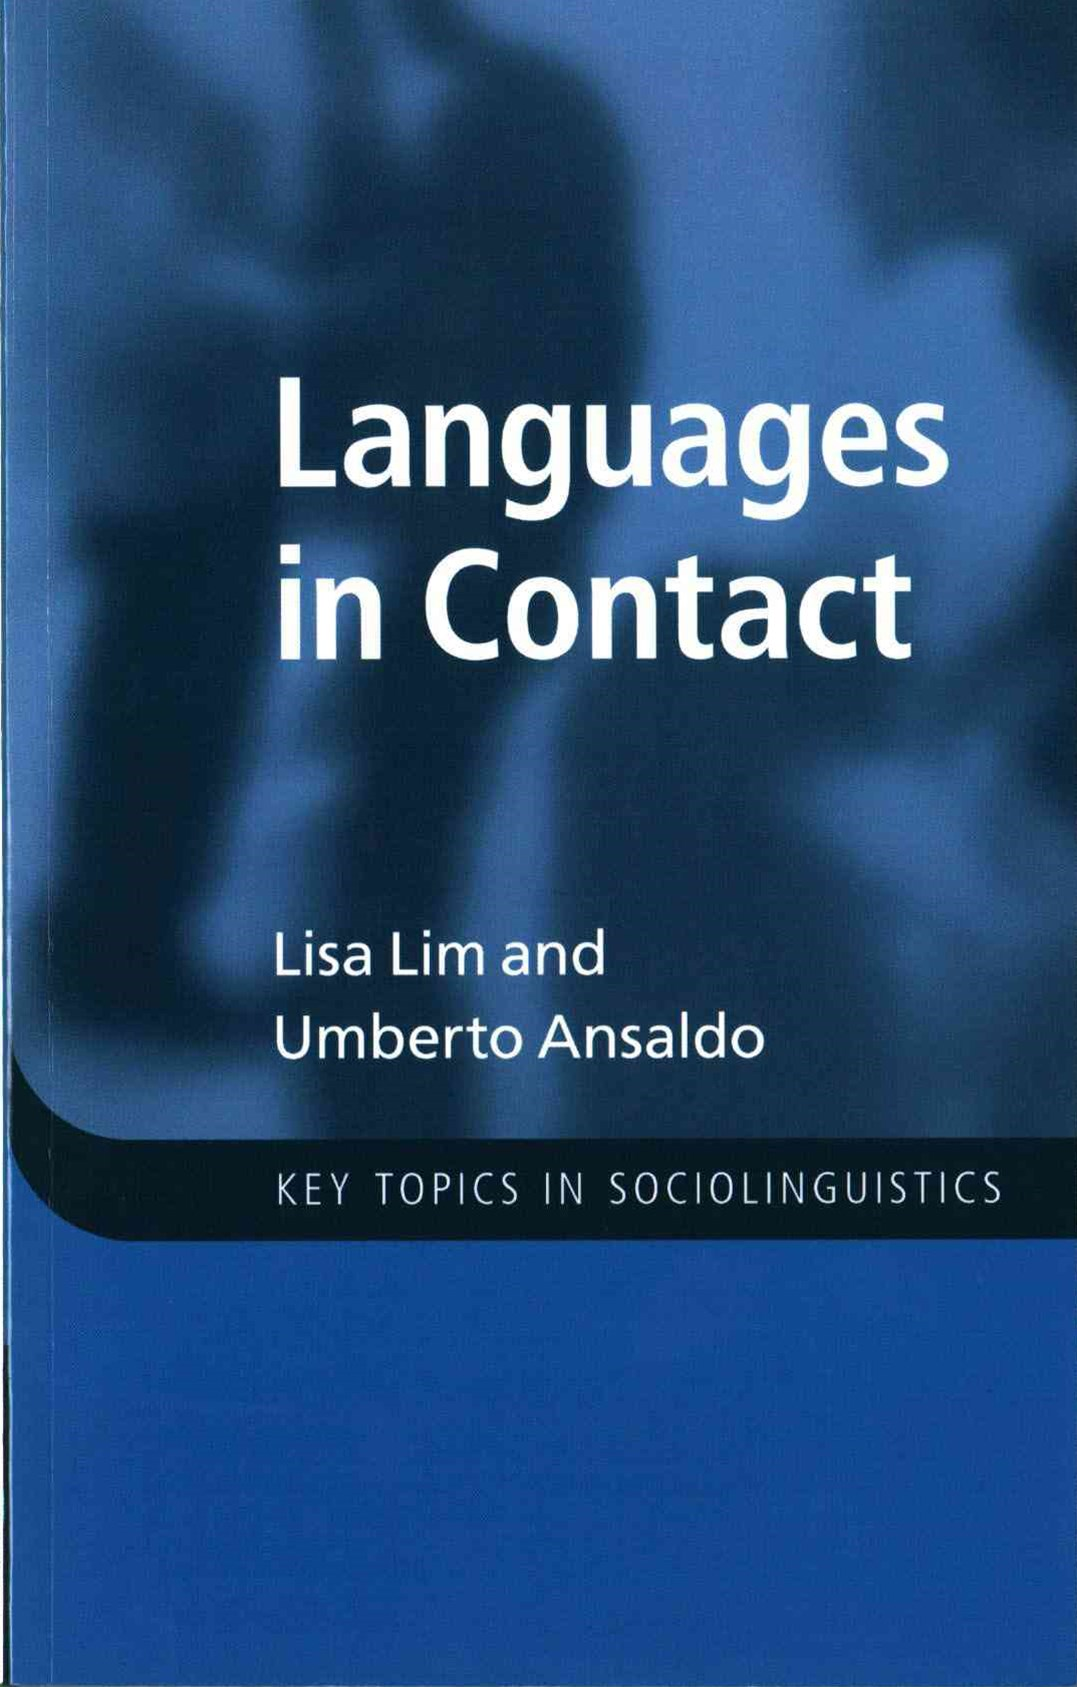 Languages in Contact